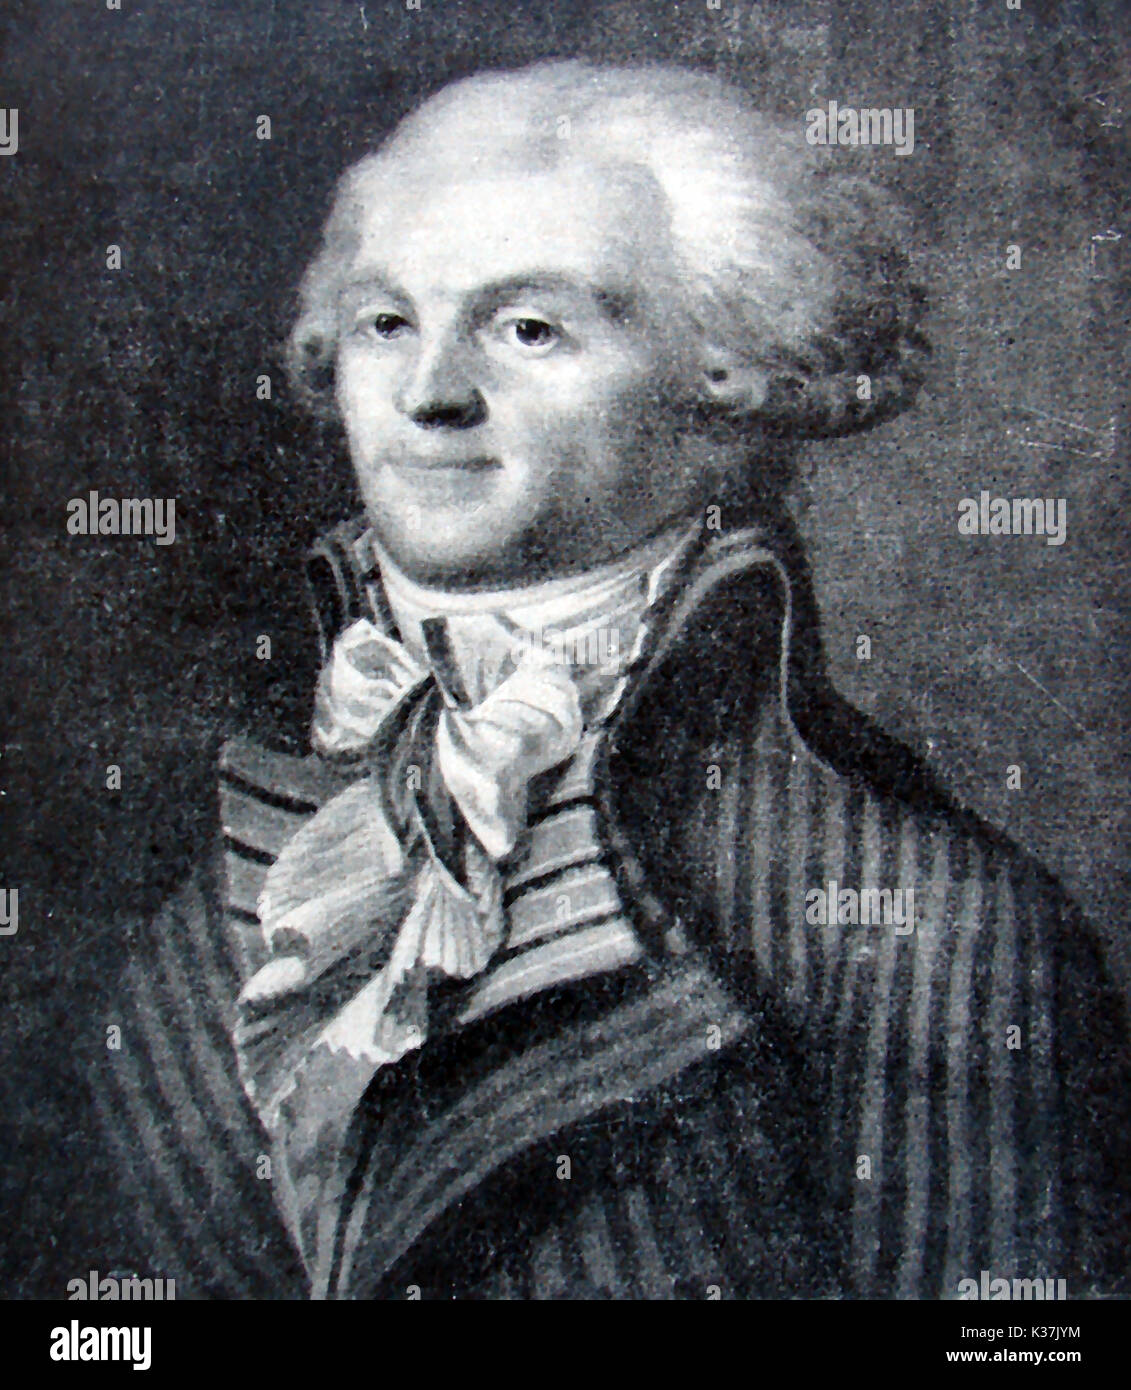 FRENCH REVOLUTION 1789 , A portrait of Maximilien Francois Marie Isidore  Robespierre (Maximilien Robespierre)